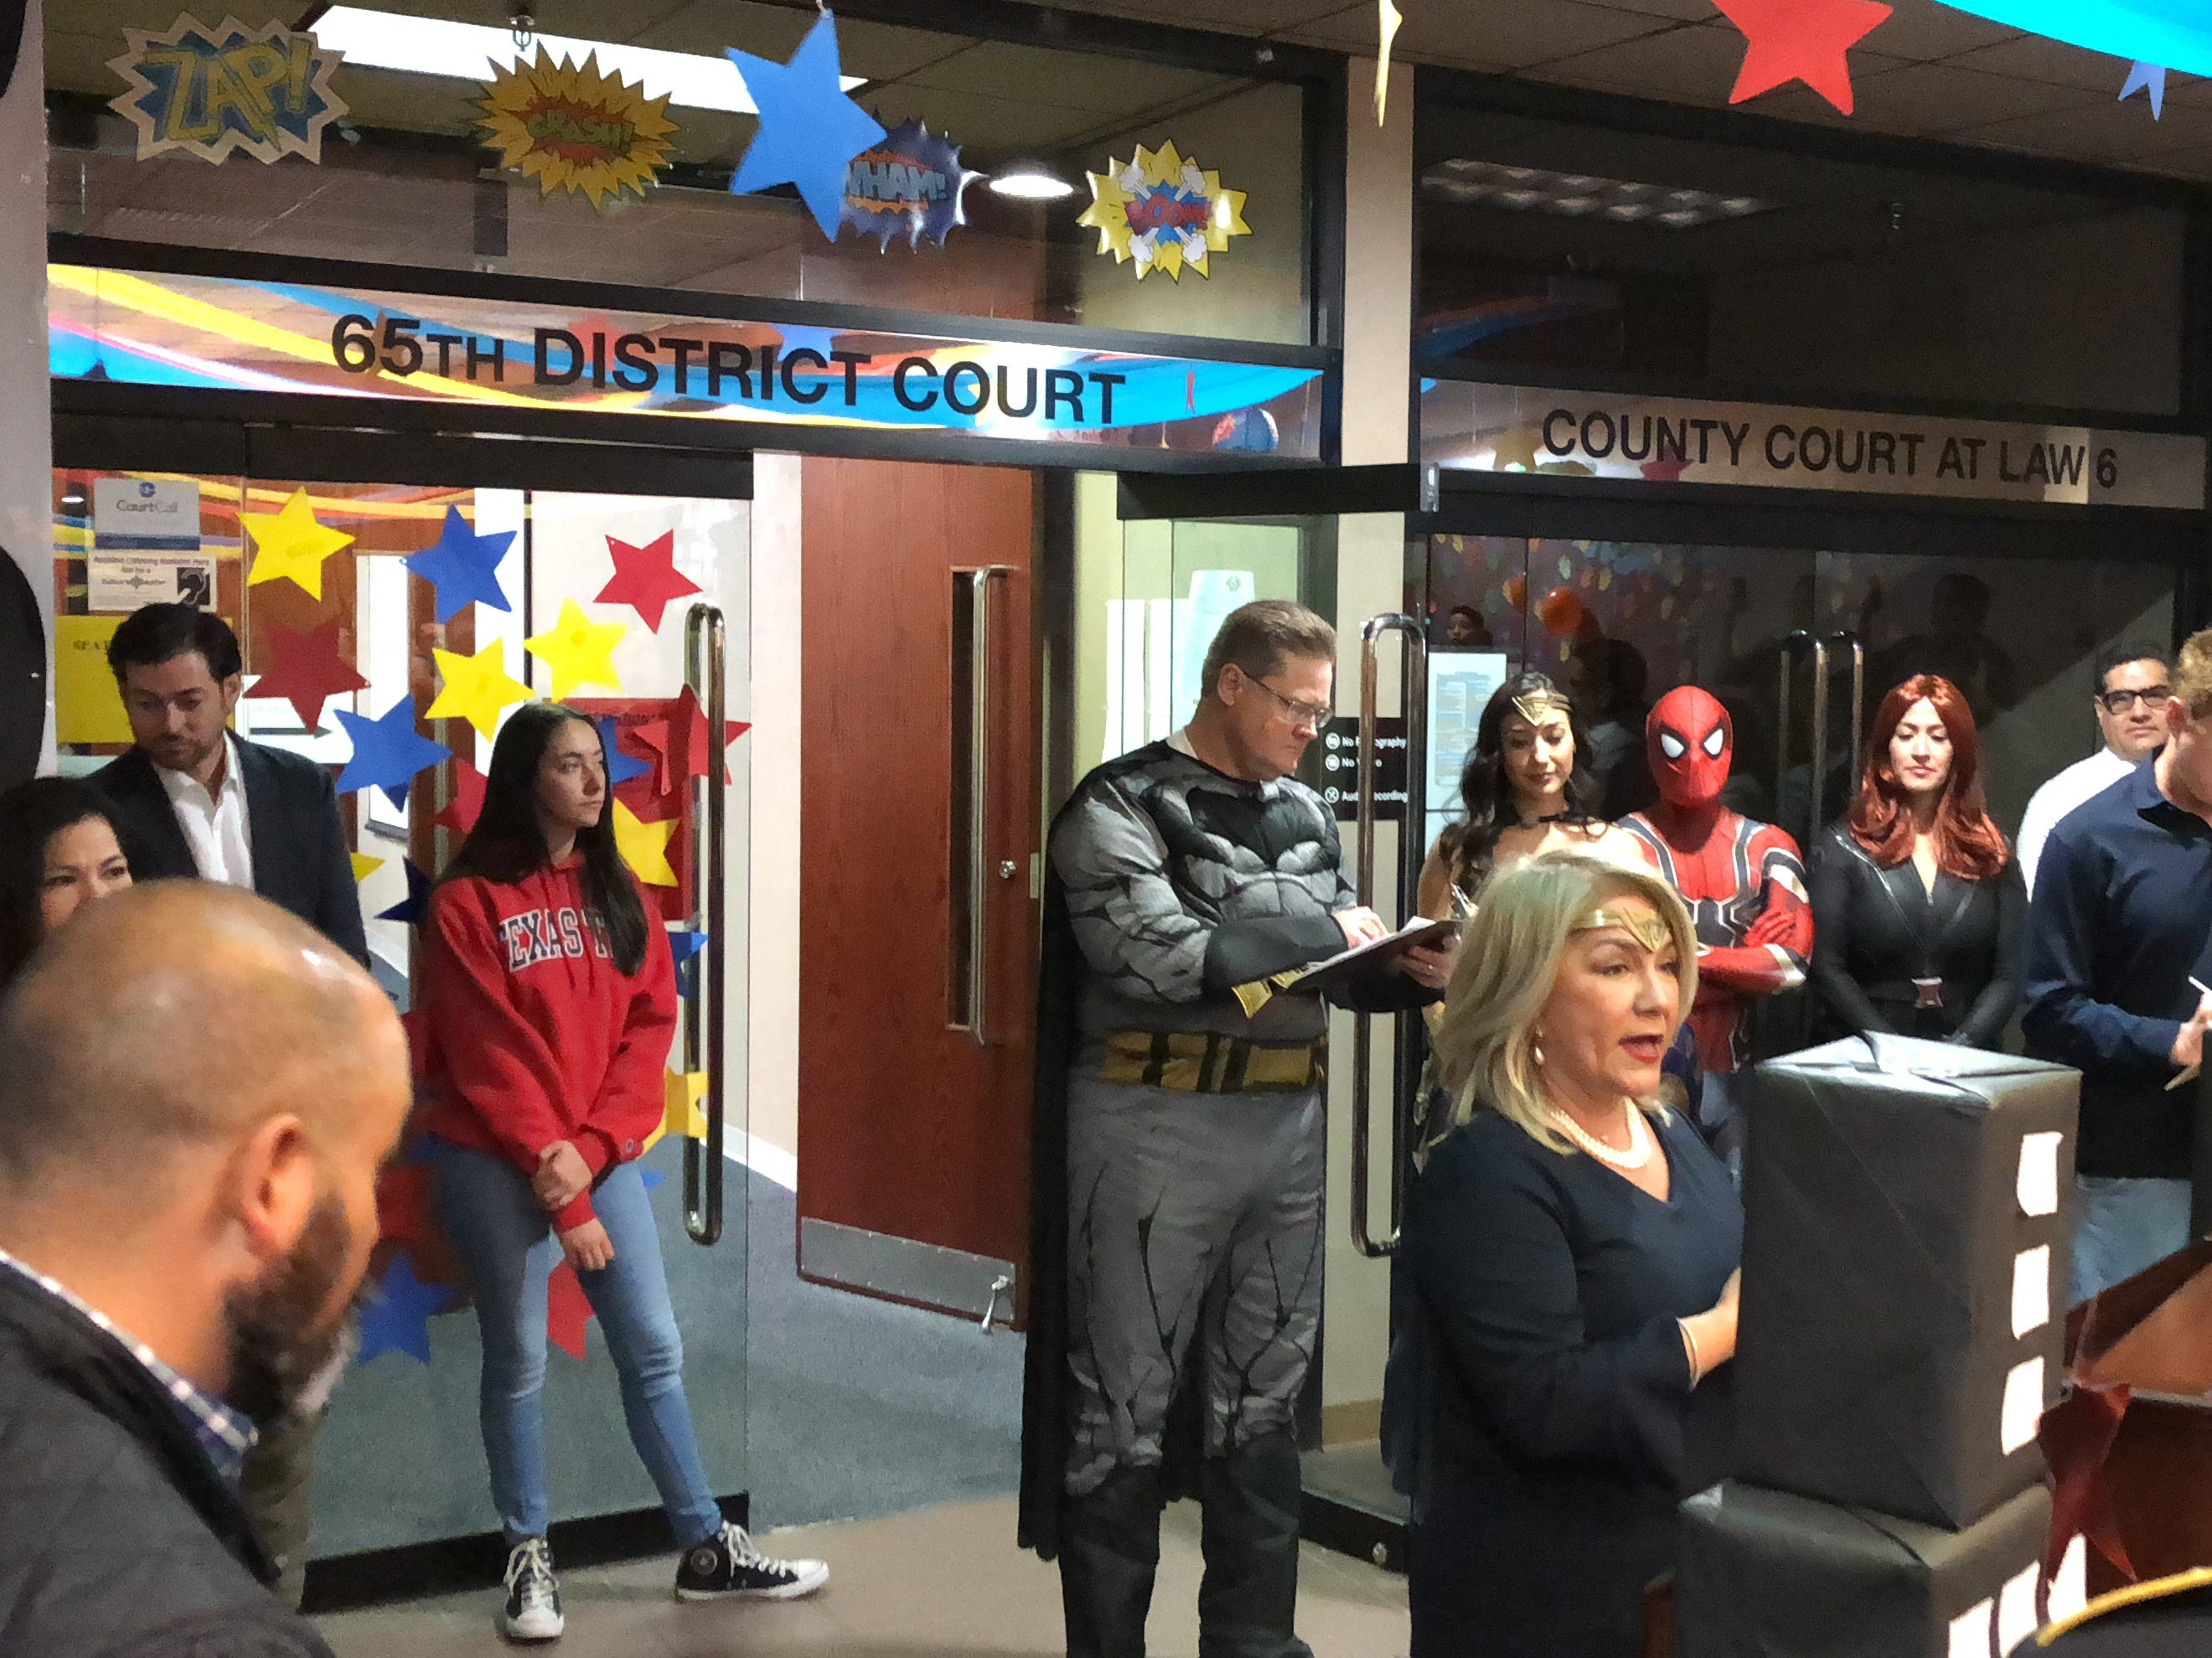 A National Adoption Day event was held Saturday, Nov. 17, 2018, at the El Paso County Courthouse. A total of 29 children were officially adopted by 12 El Paso families. 65th District Court Judge Yahara Lisa Gutierrez addresses the families while the bailiff, dressed as Batman, calls out names.